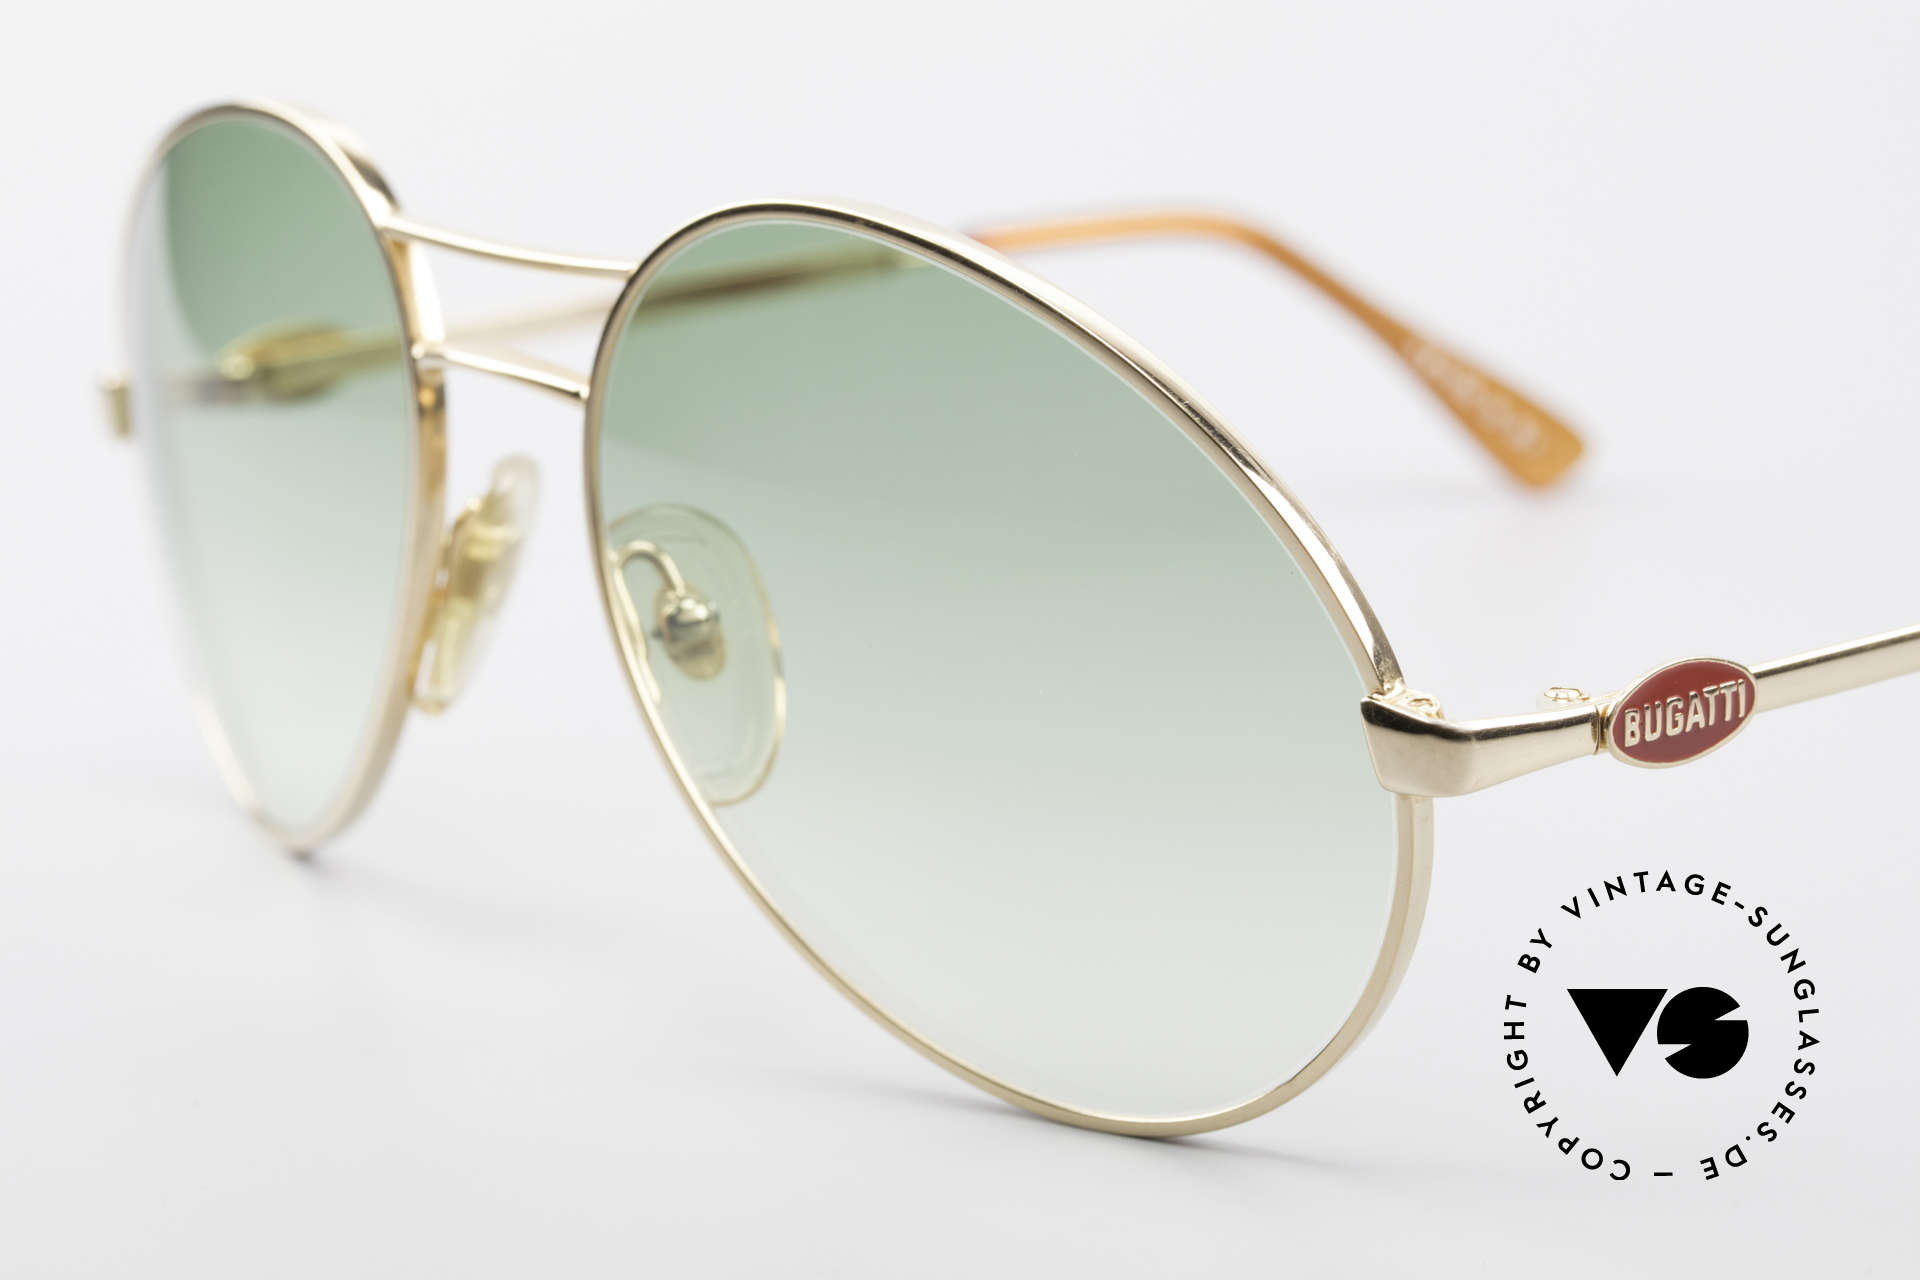 Bugatti 64335 Extraordinary Frame Design, green-gradient lenses for max. UV protection, Made for Men